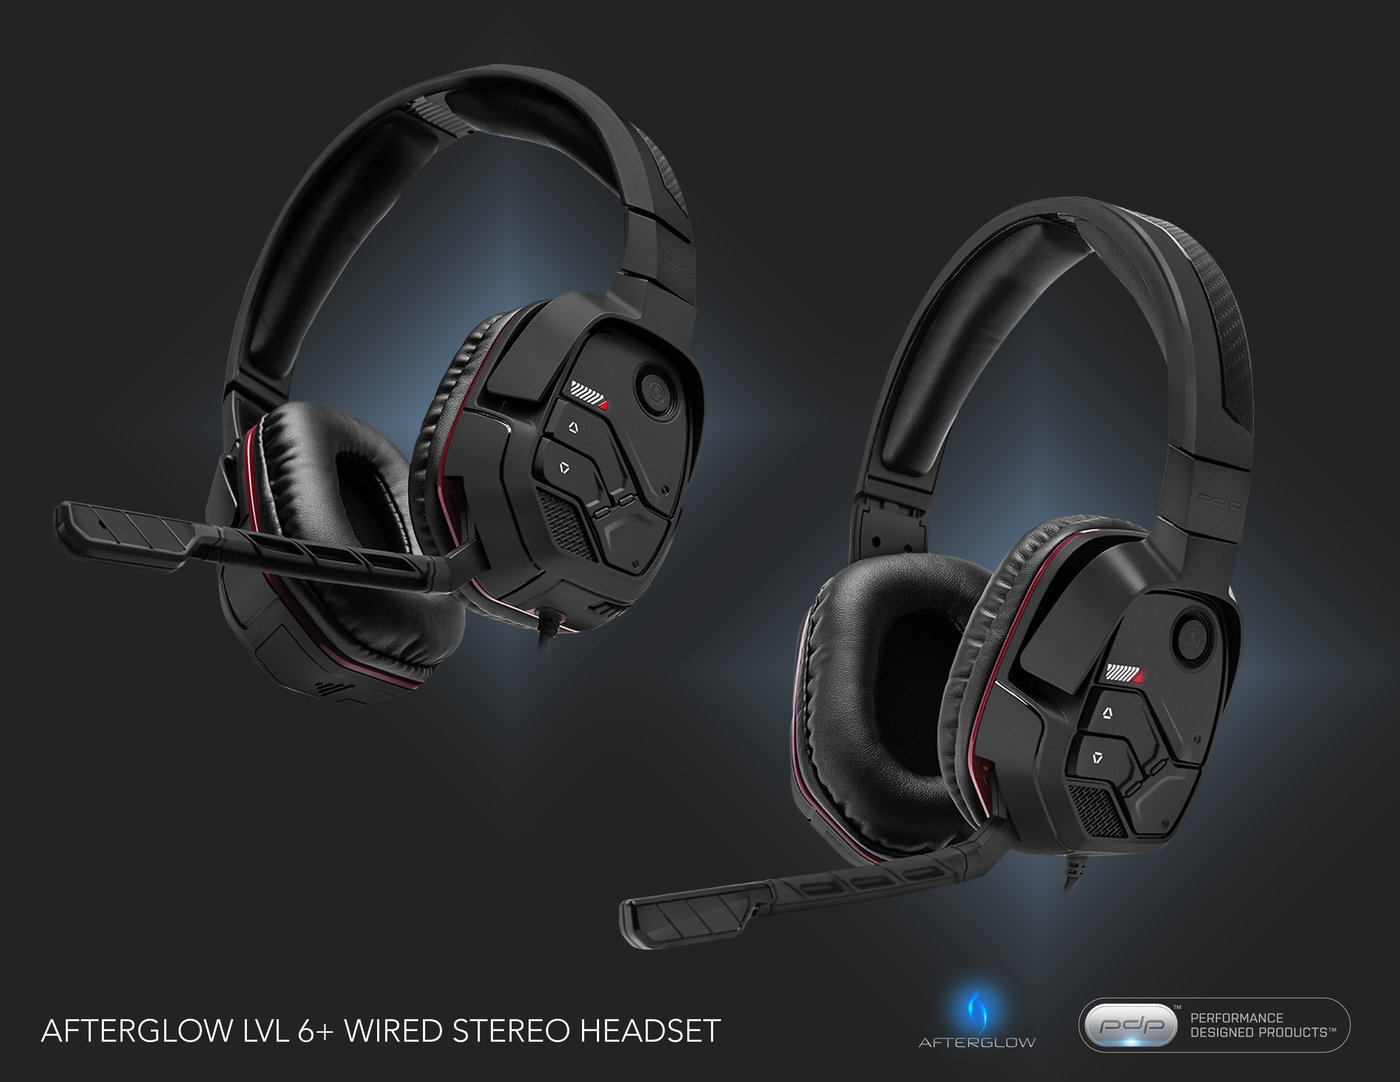 Afterglow LVL 6+ Wireless Headset by Dennis Foster at Coroflot.com